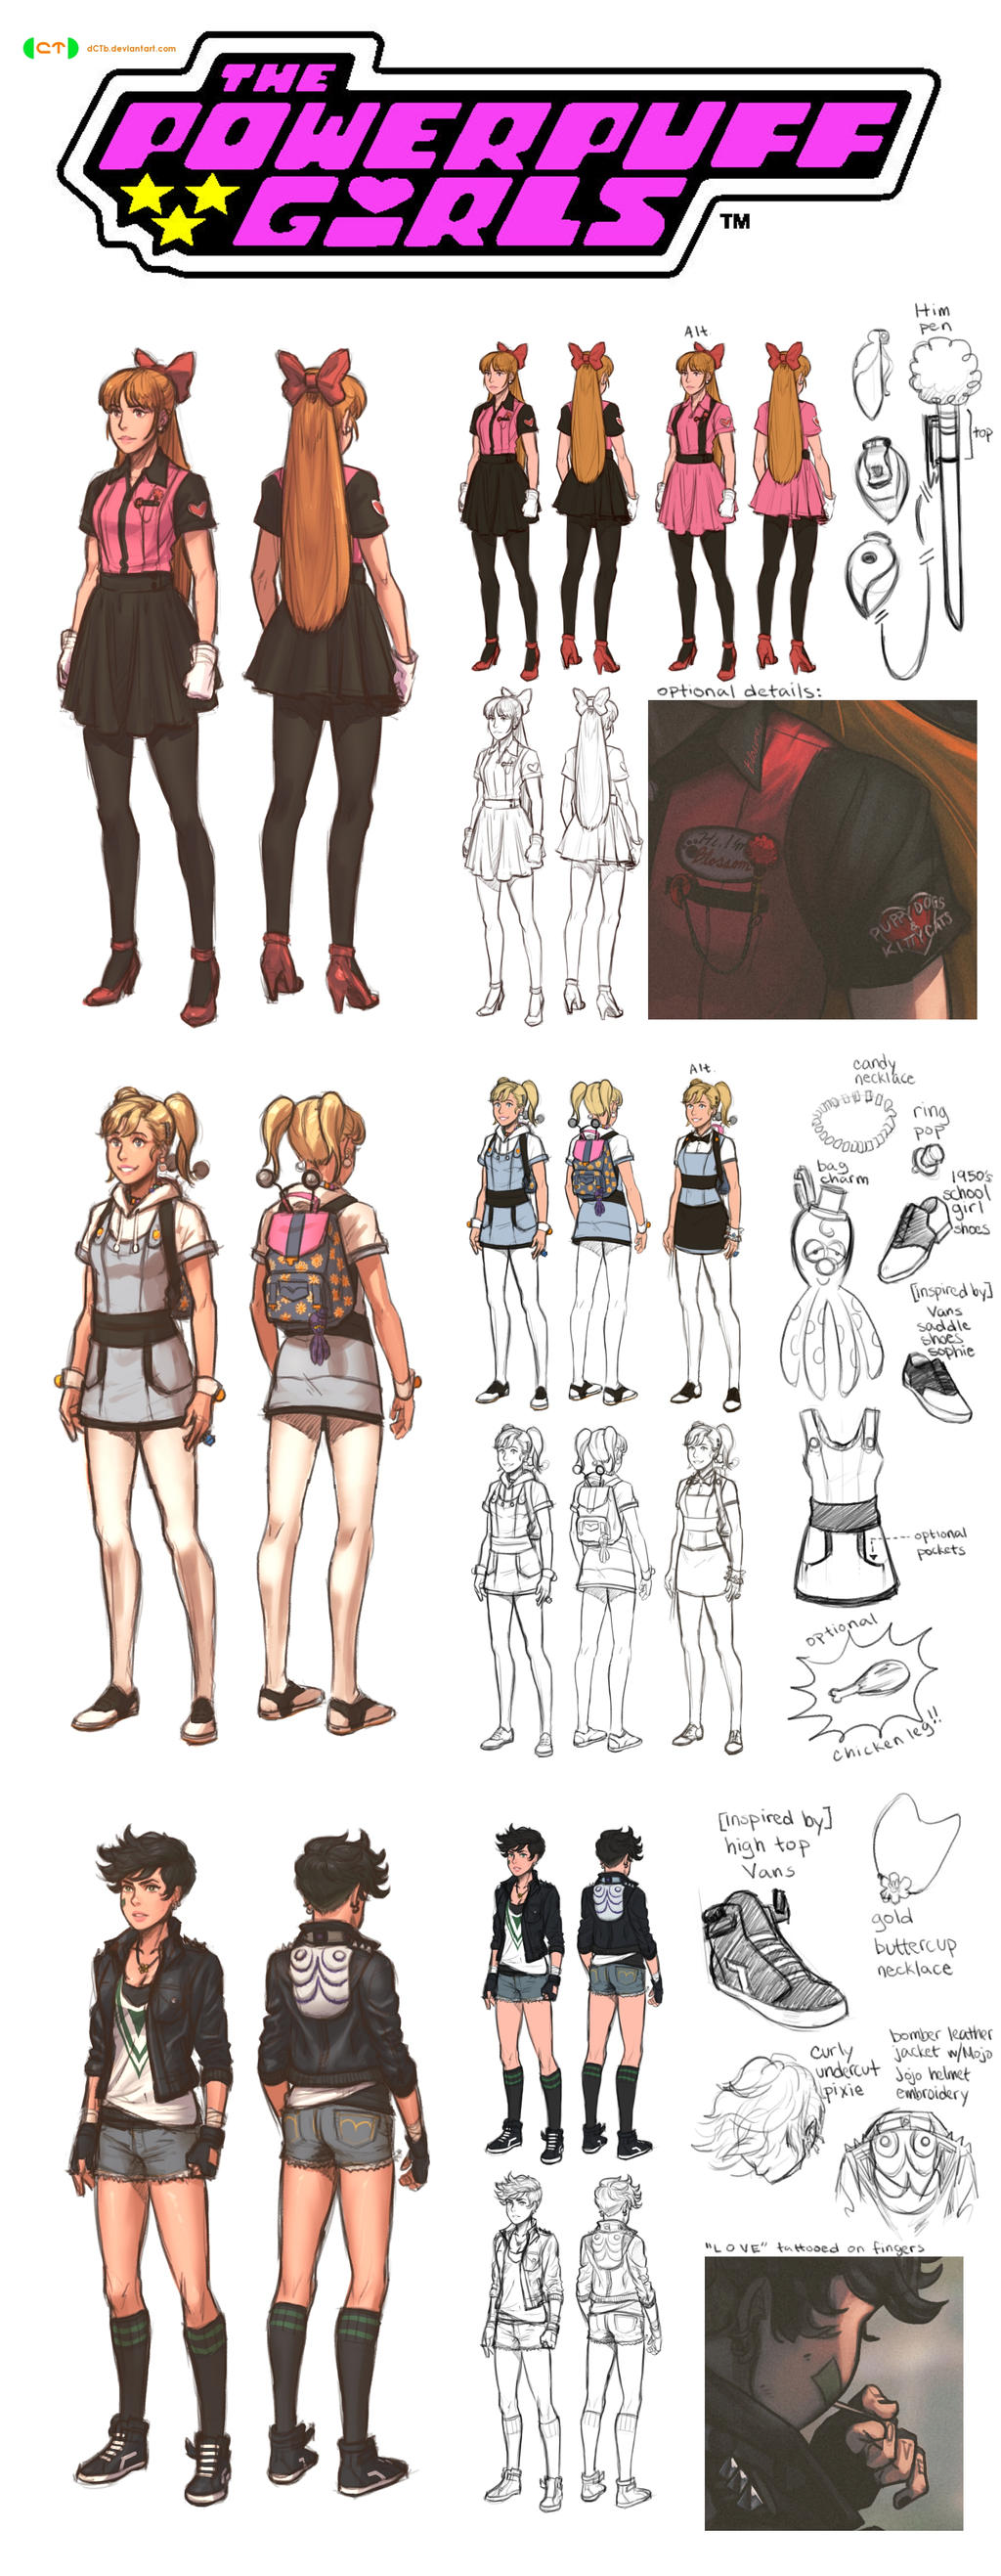 Powerpuff Girls CT character designs FULL by dCTb